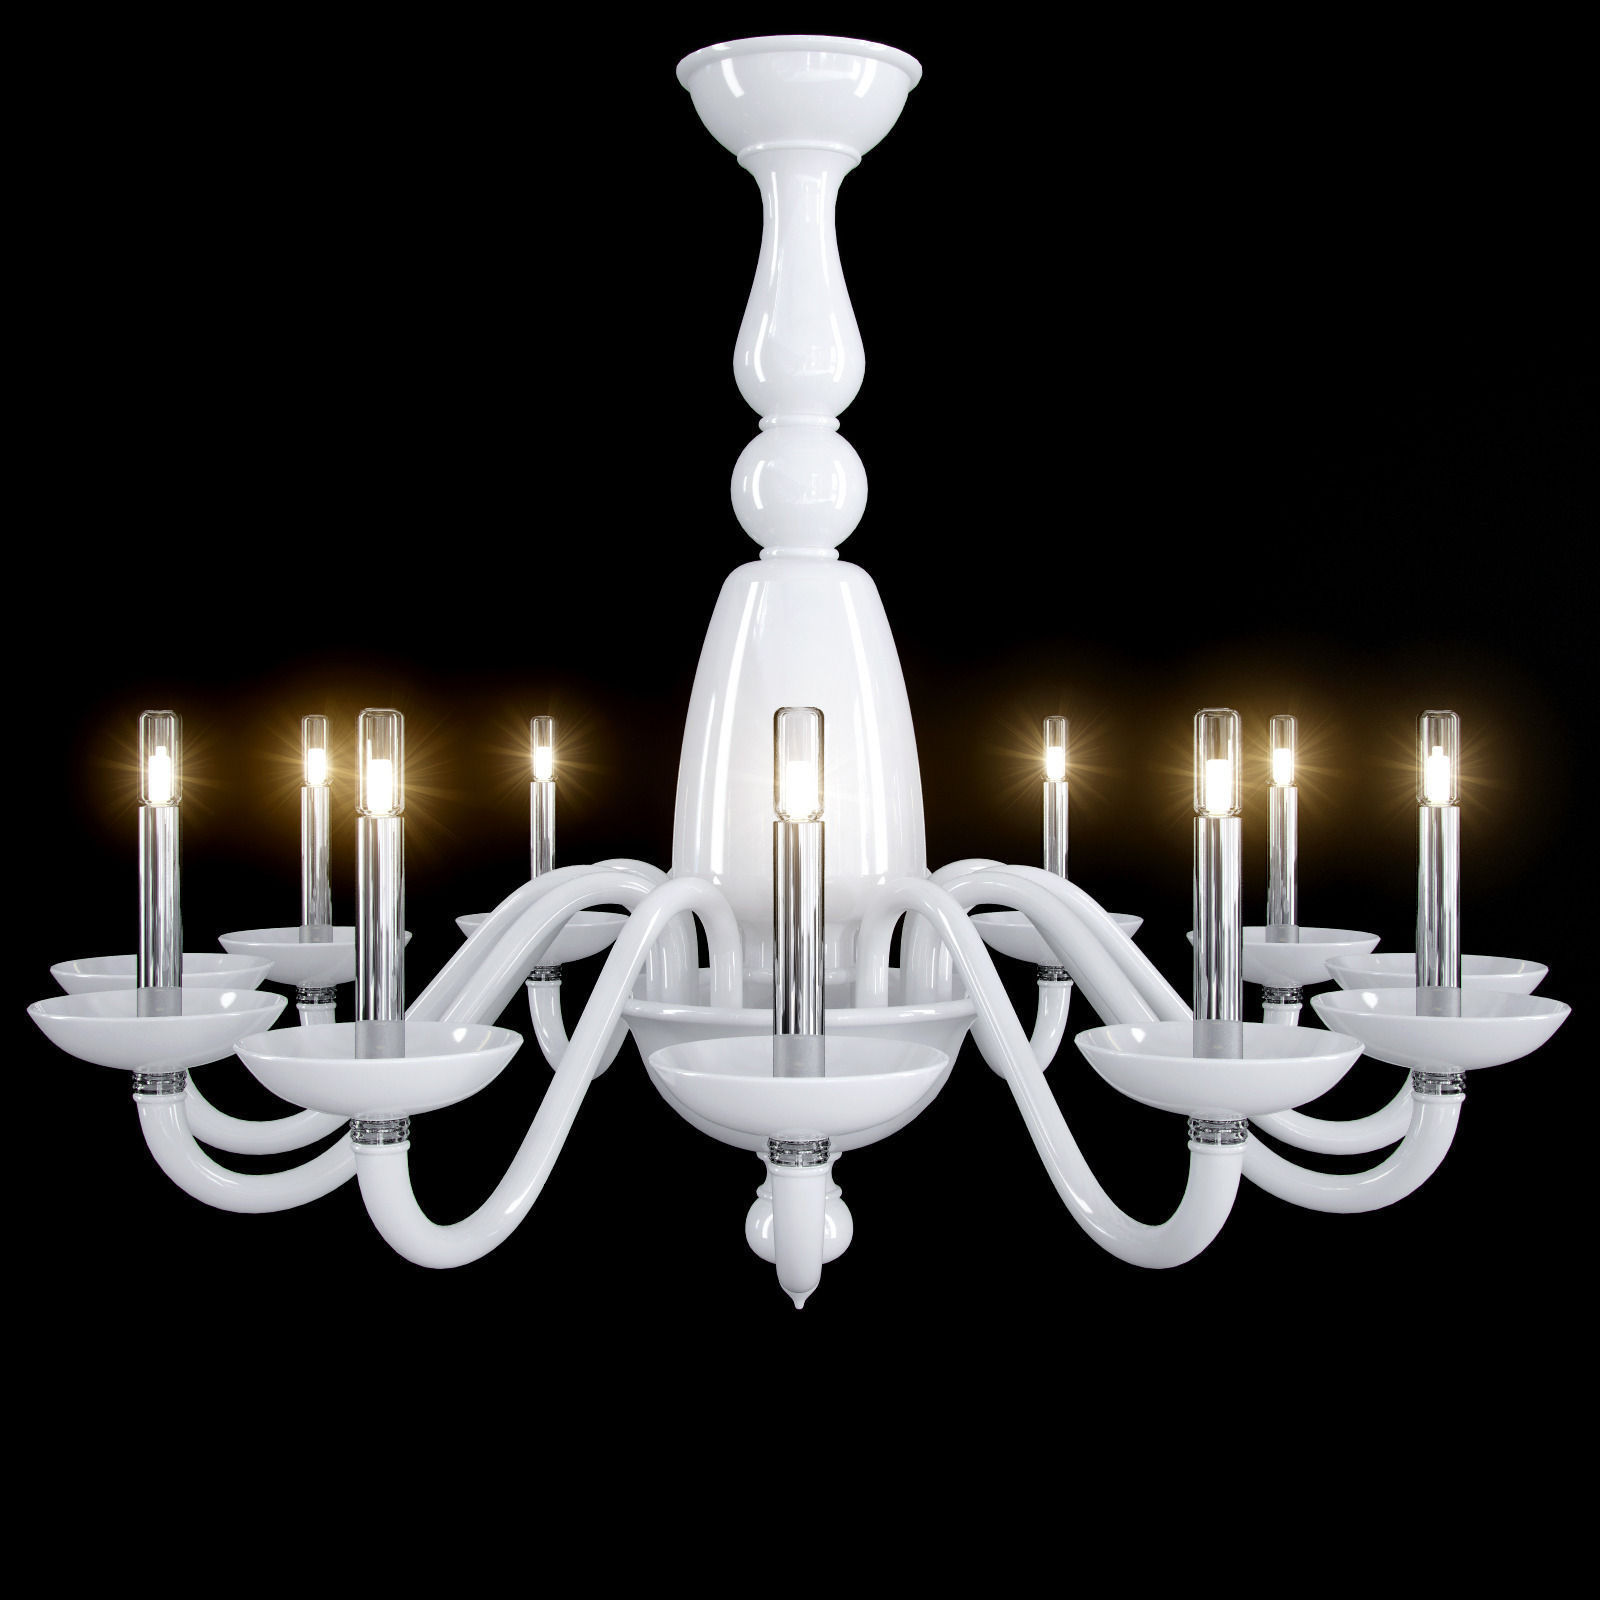 barovier toso palladiano chandelier 3d model max obj. Black Bedroom Furniture Sets. Home Design Ideas